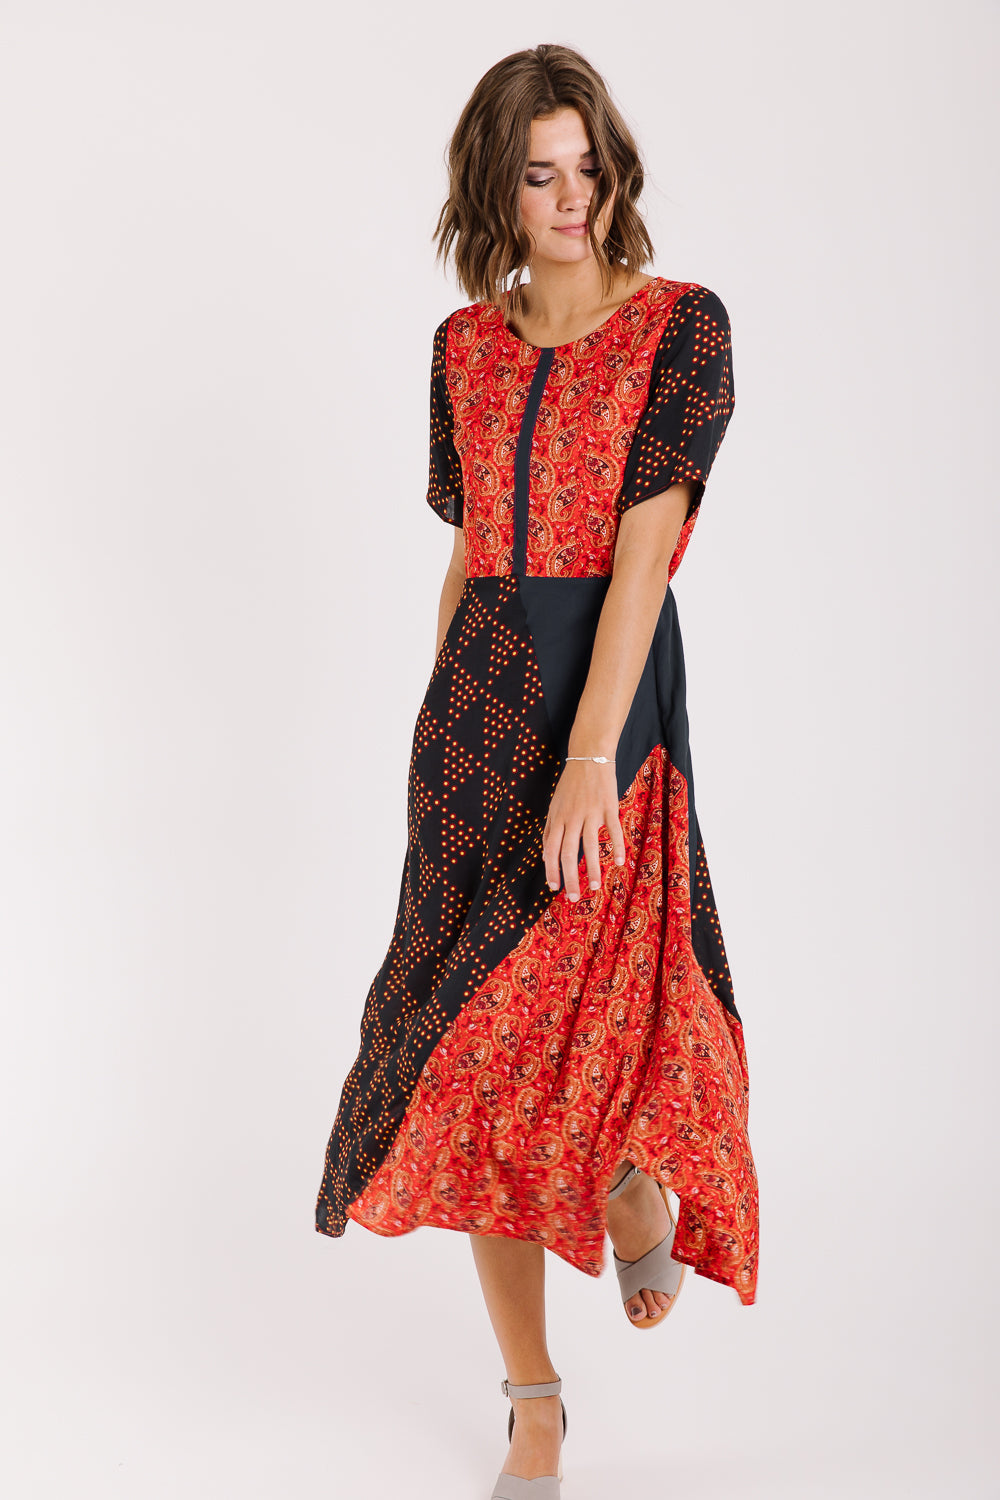 Piper & Scoot: The Staten Paisley Midi Dress in Red